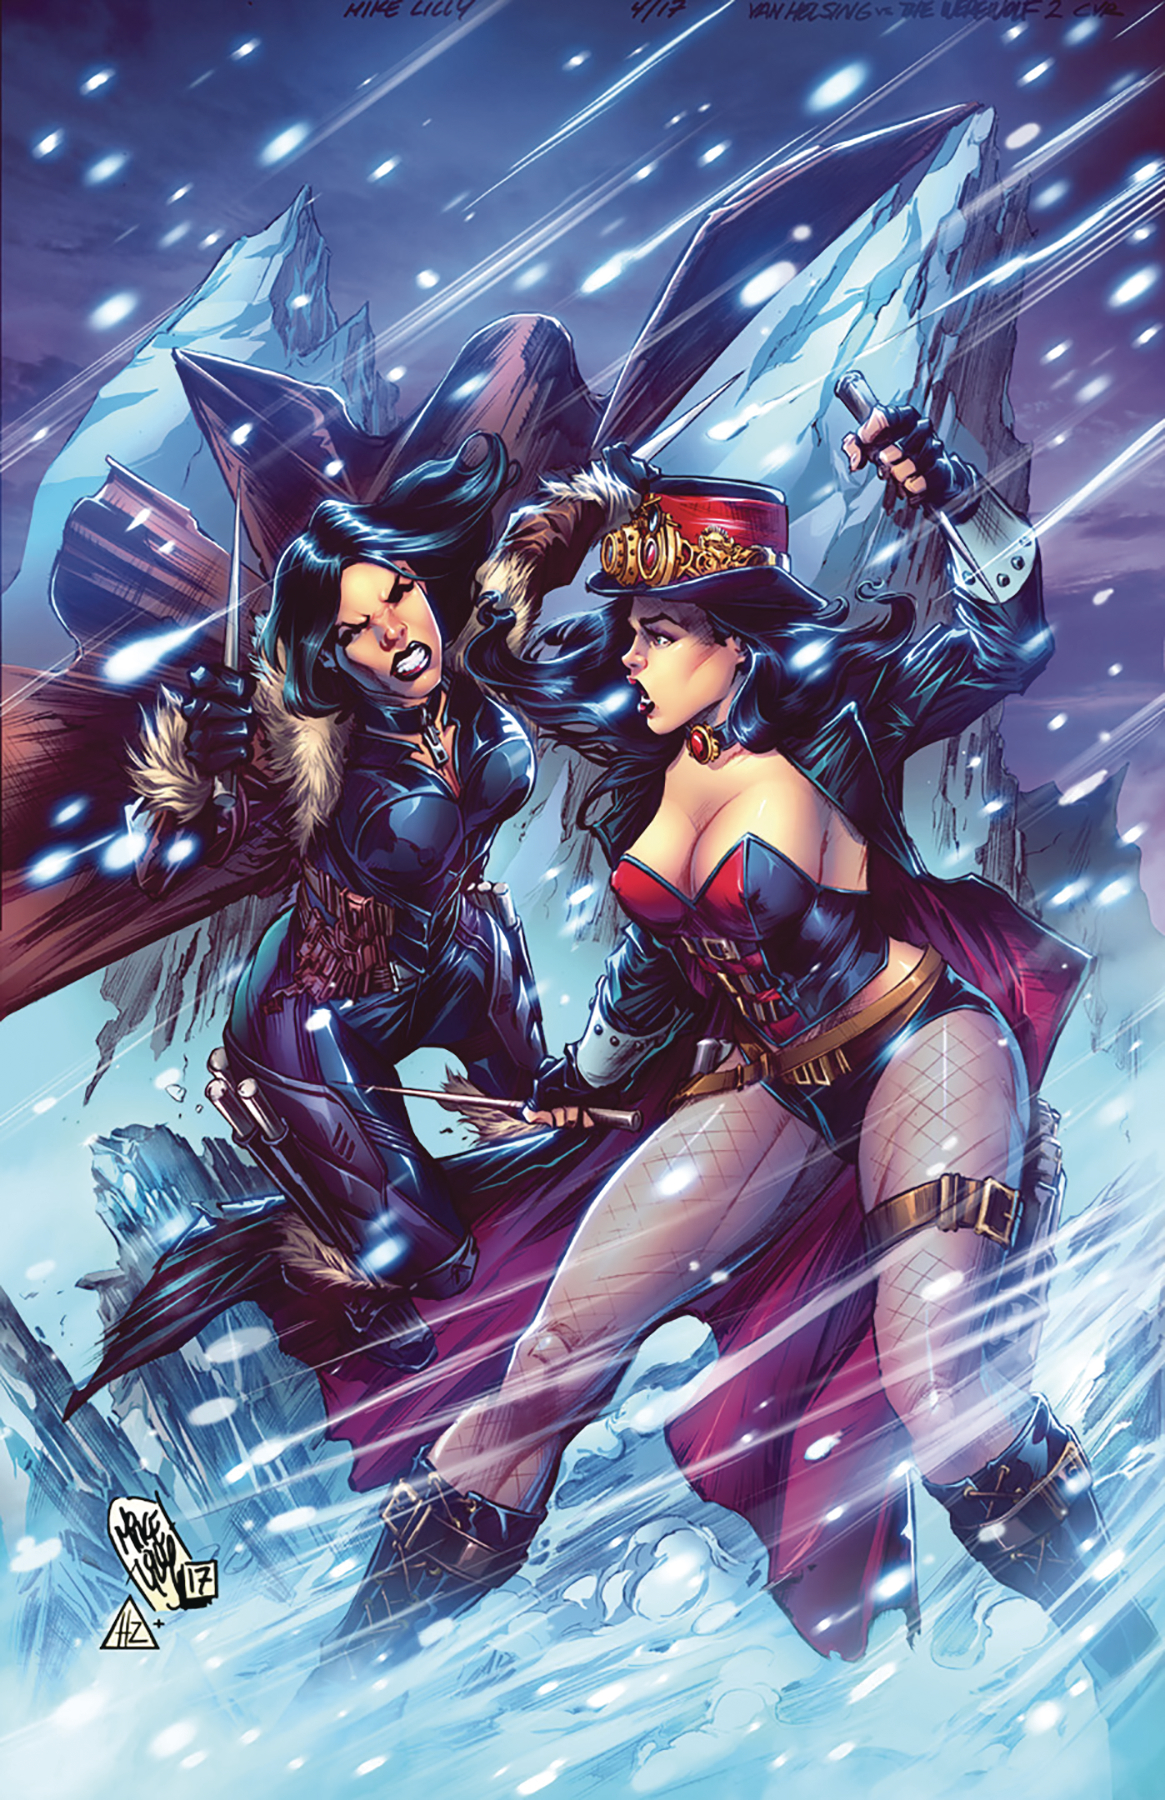 VAN HELSING VS THE WEREWOLF #2 CVR B LILLY